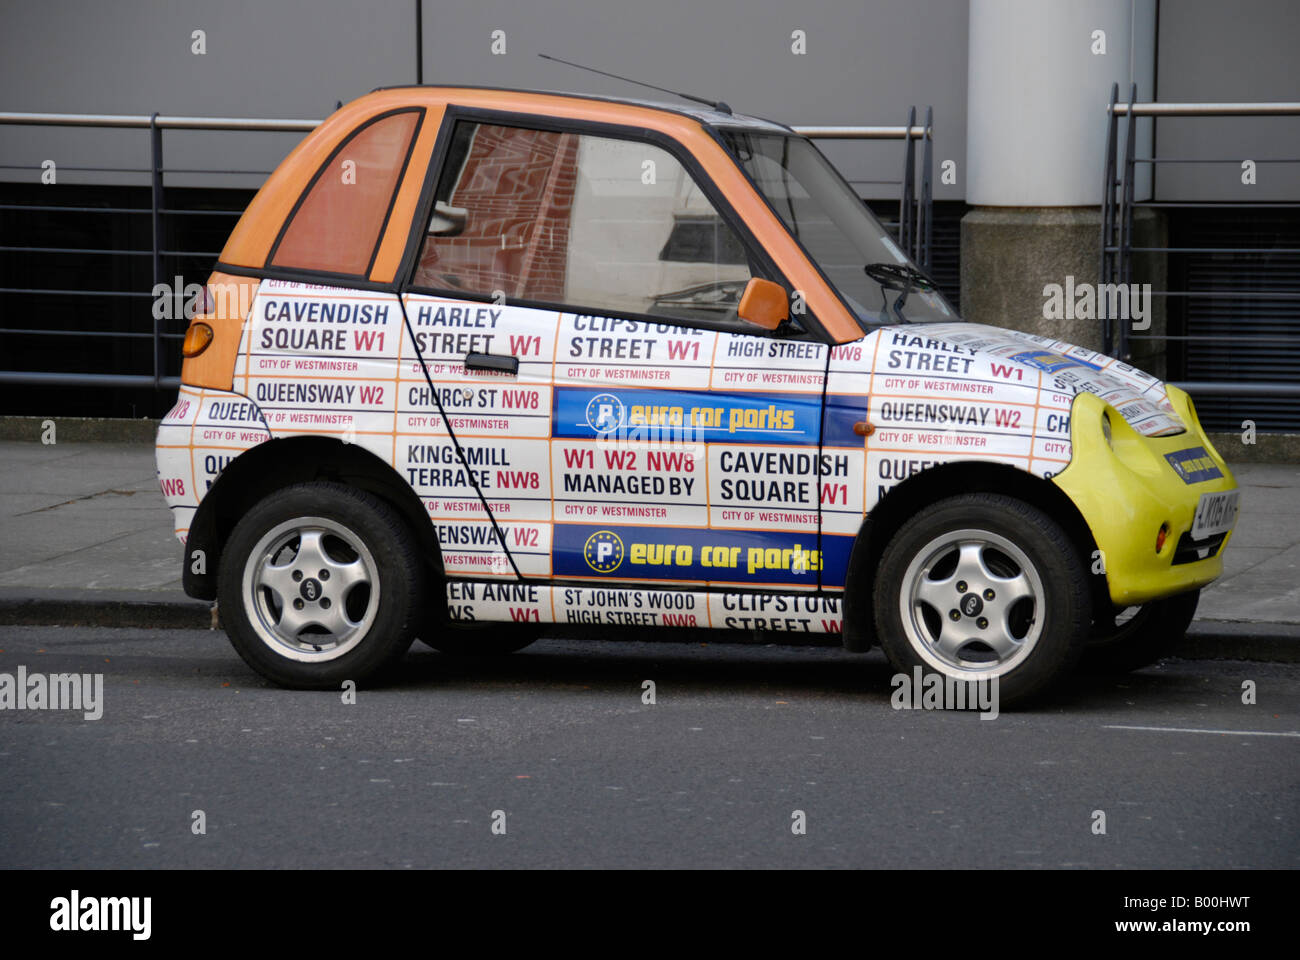 Small Car Covered In Advertisement In The Form Of London Street